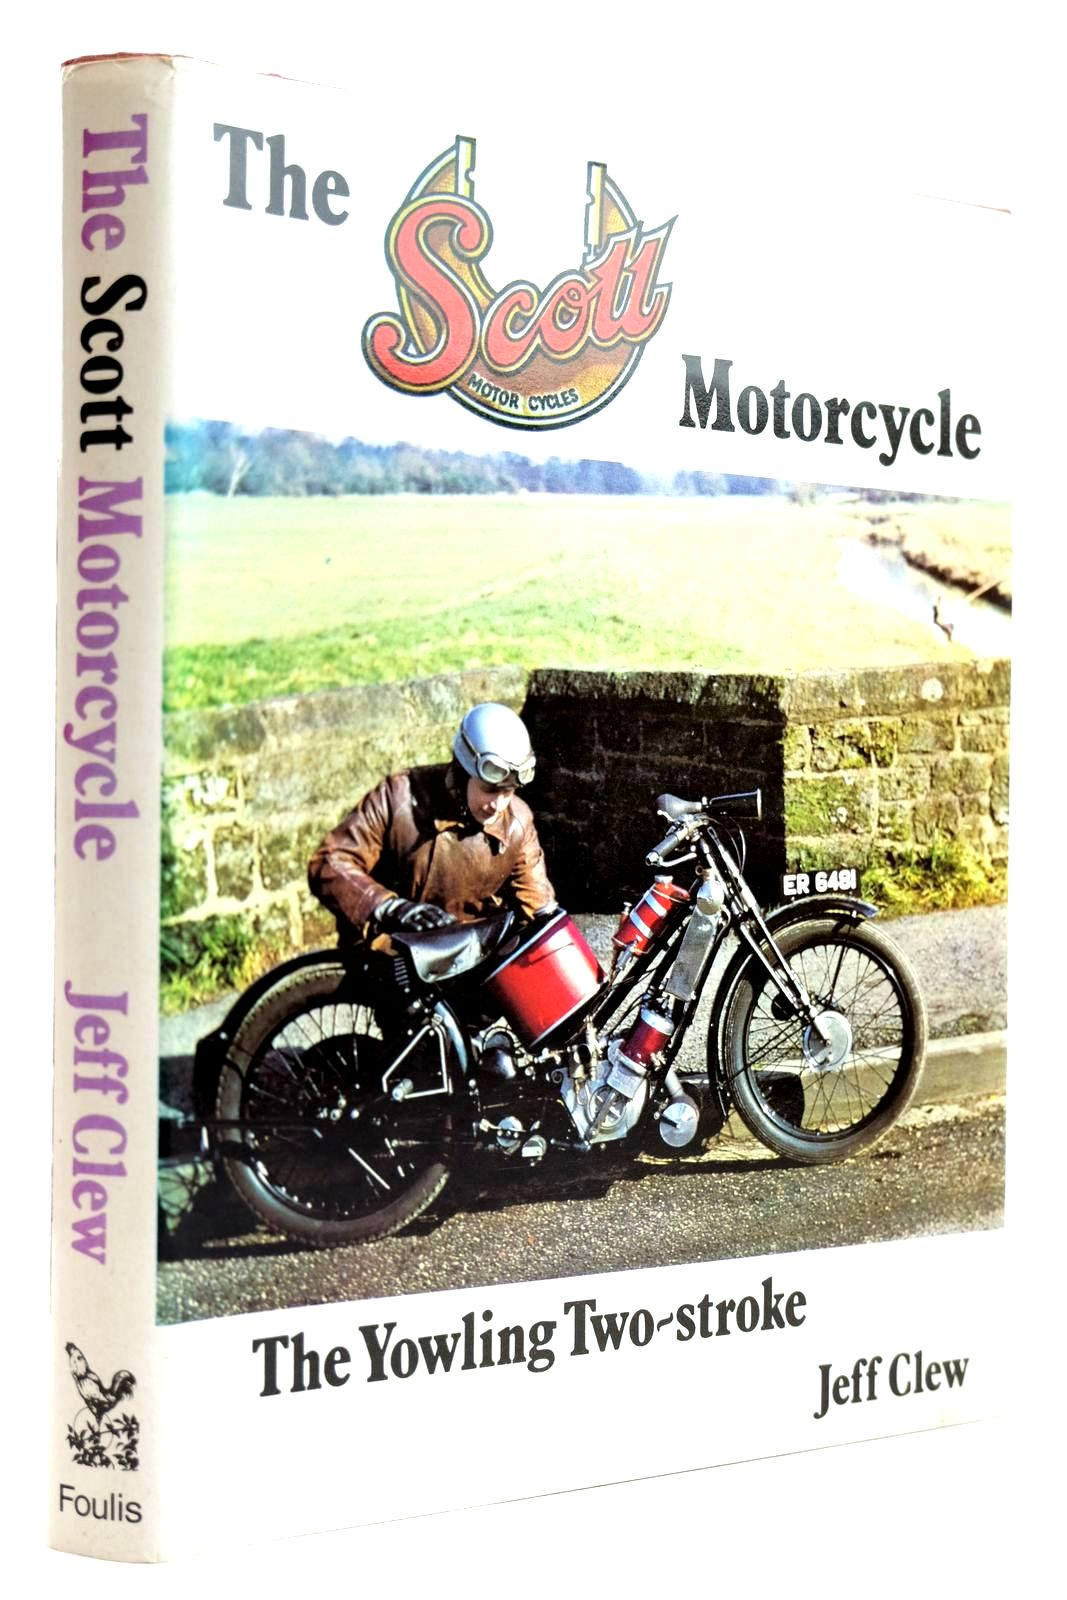 Photo of THE SCOTT MOTORCYCLE THE YOWLING TWO-STROKE written by Clew, Jeff published by Foulis, Haynes (STOCK CODE: 2131997)  for sale by Stella & Rose's Books